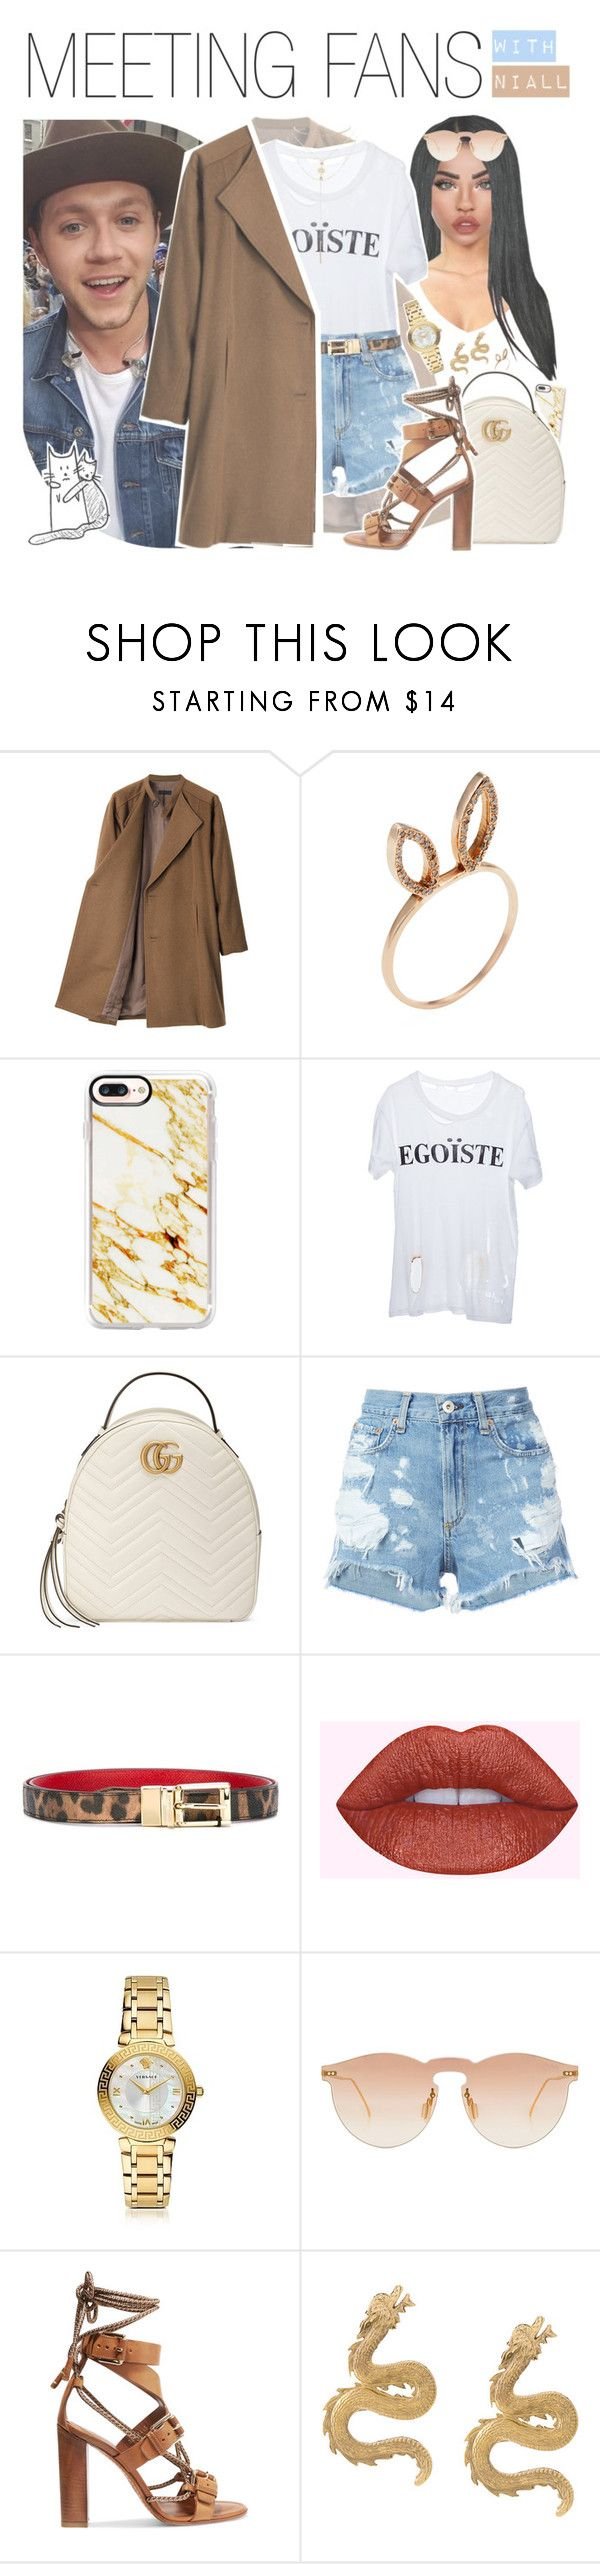 """♡ meeting fans with niall"" by fangirlsets ❤ liked on Polyvore featuring G.V.G.V., Jacquie Aiche, Casetify, Enfants Riches Déprimés, Gucci, rag & bone/JEAN, Dolce&Gabbana, Versace, Illesteva and Etro"